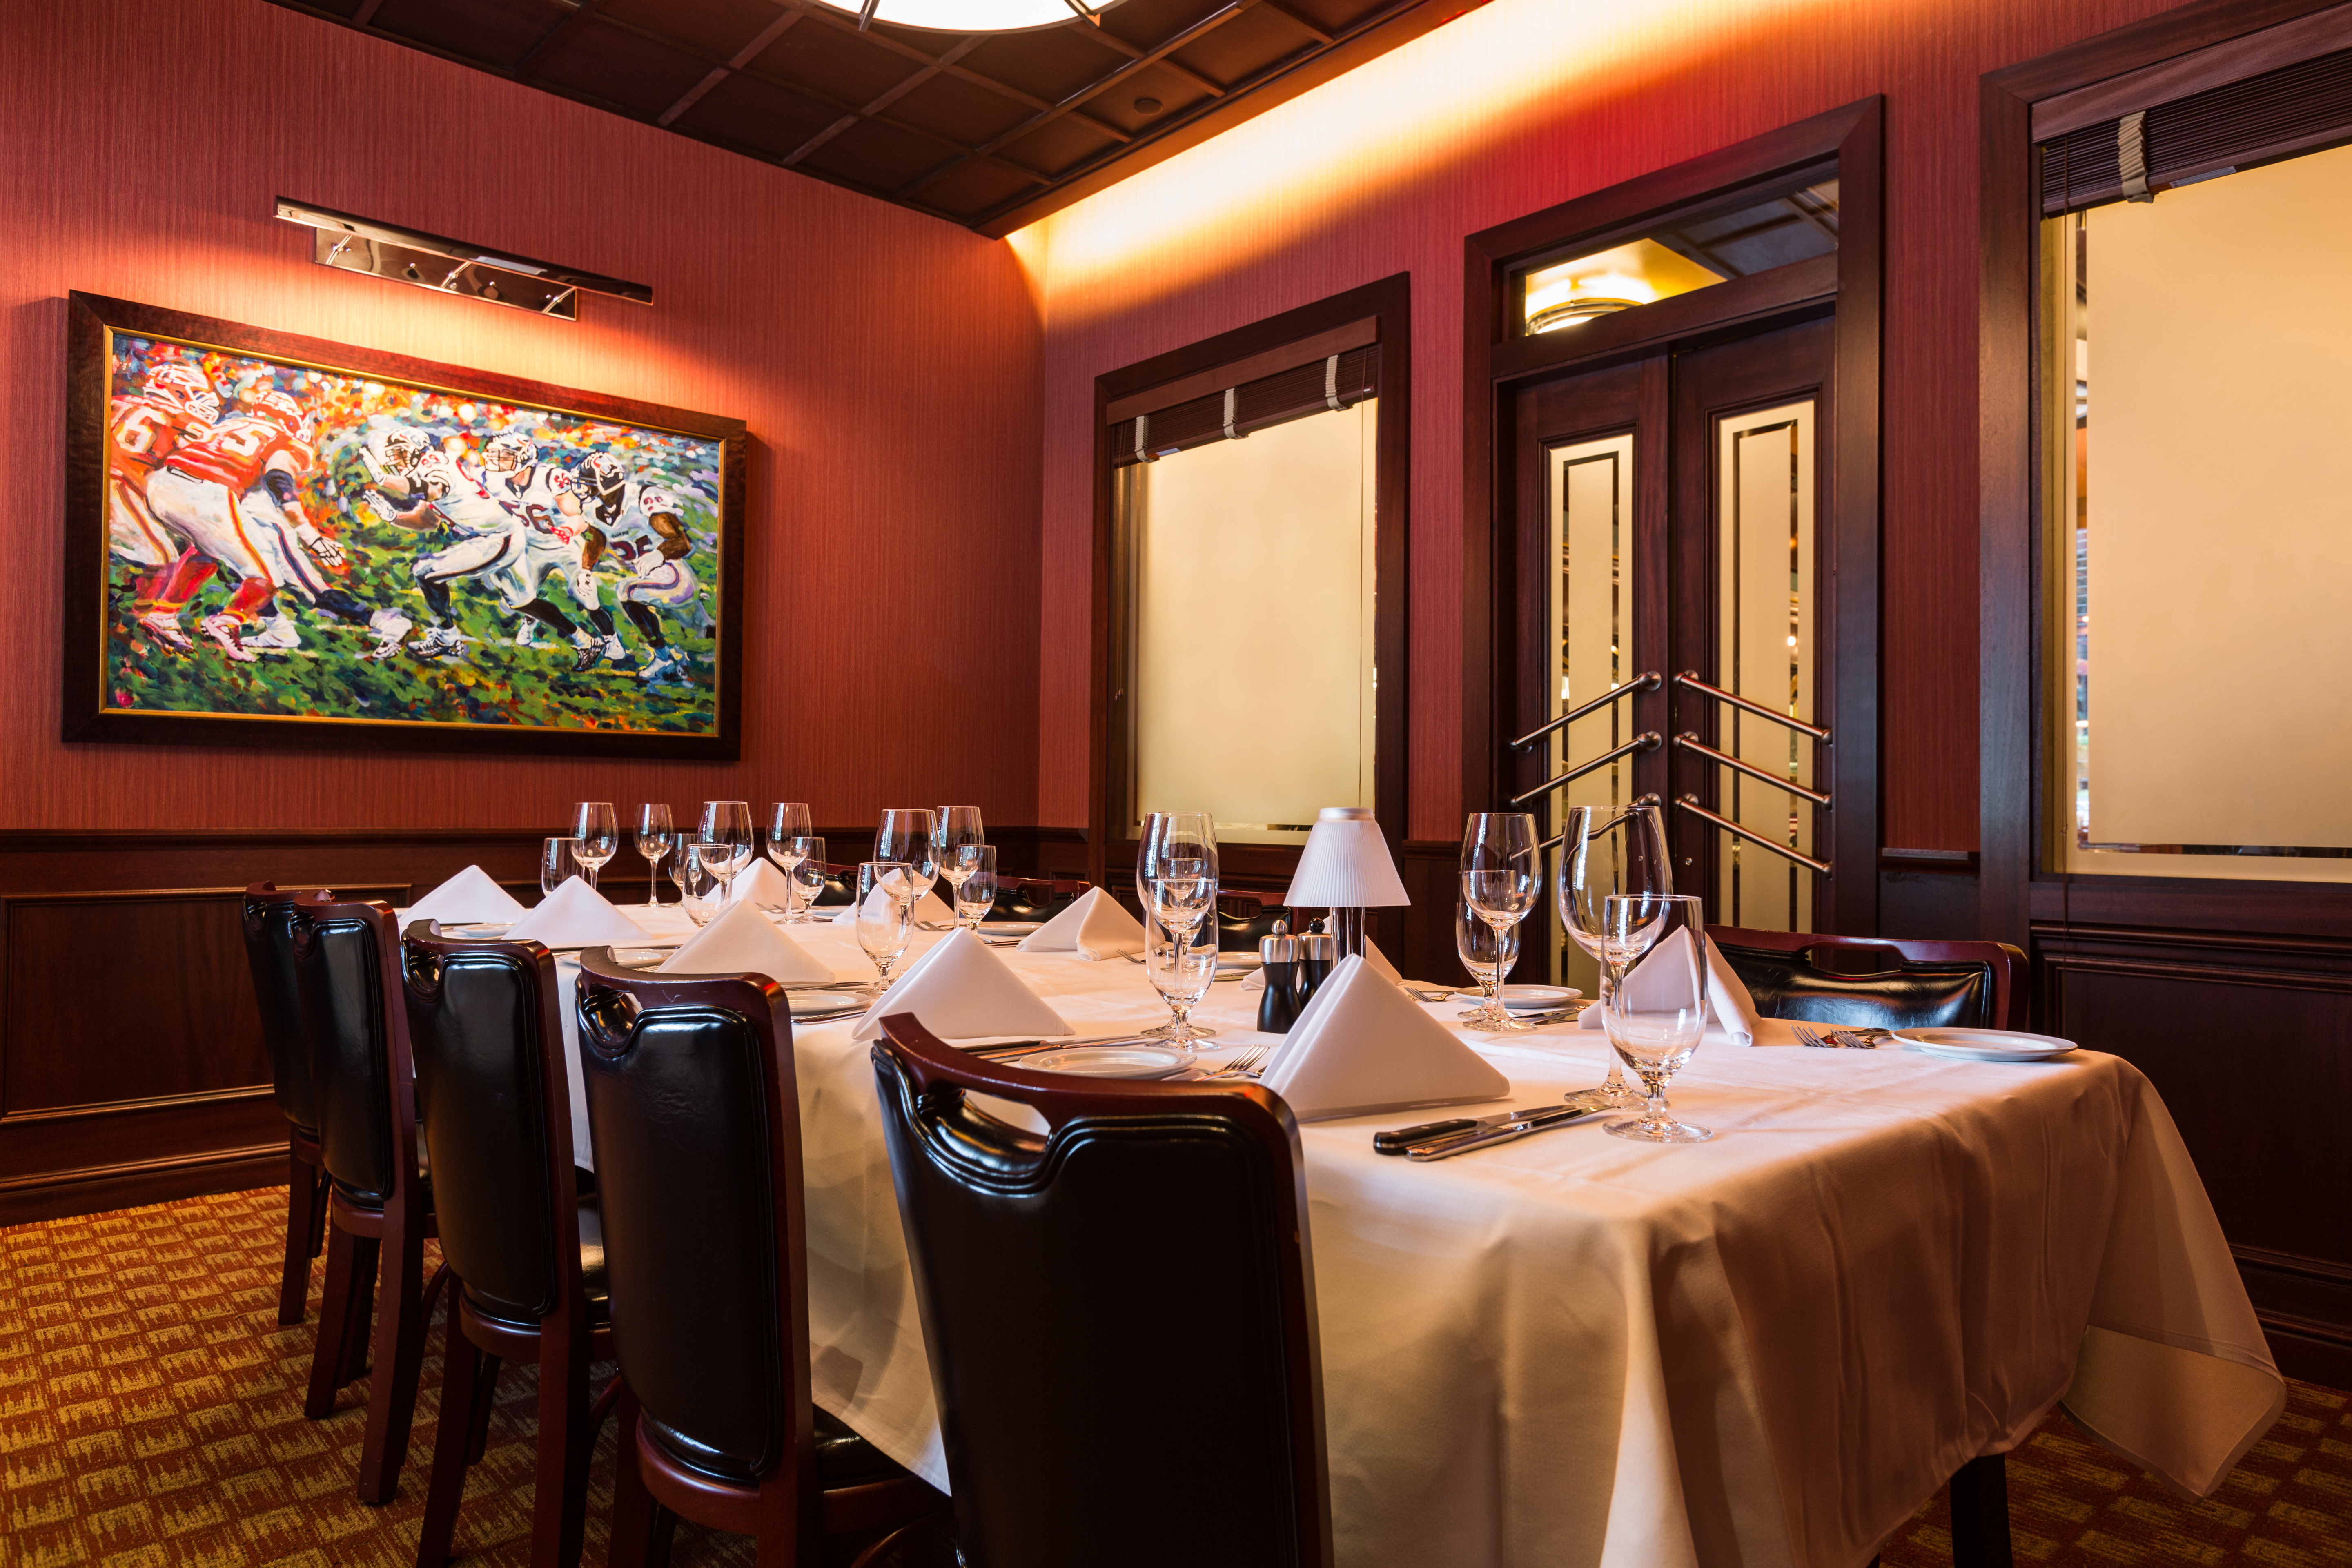 Pappas Bros Steakhouse Houston Downtown, Downtown Houston Restaurants With Private Dining Rooms